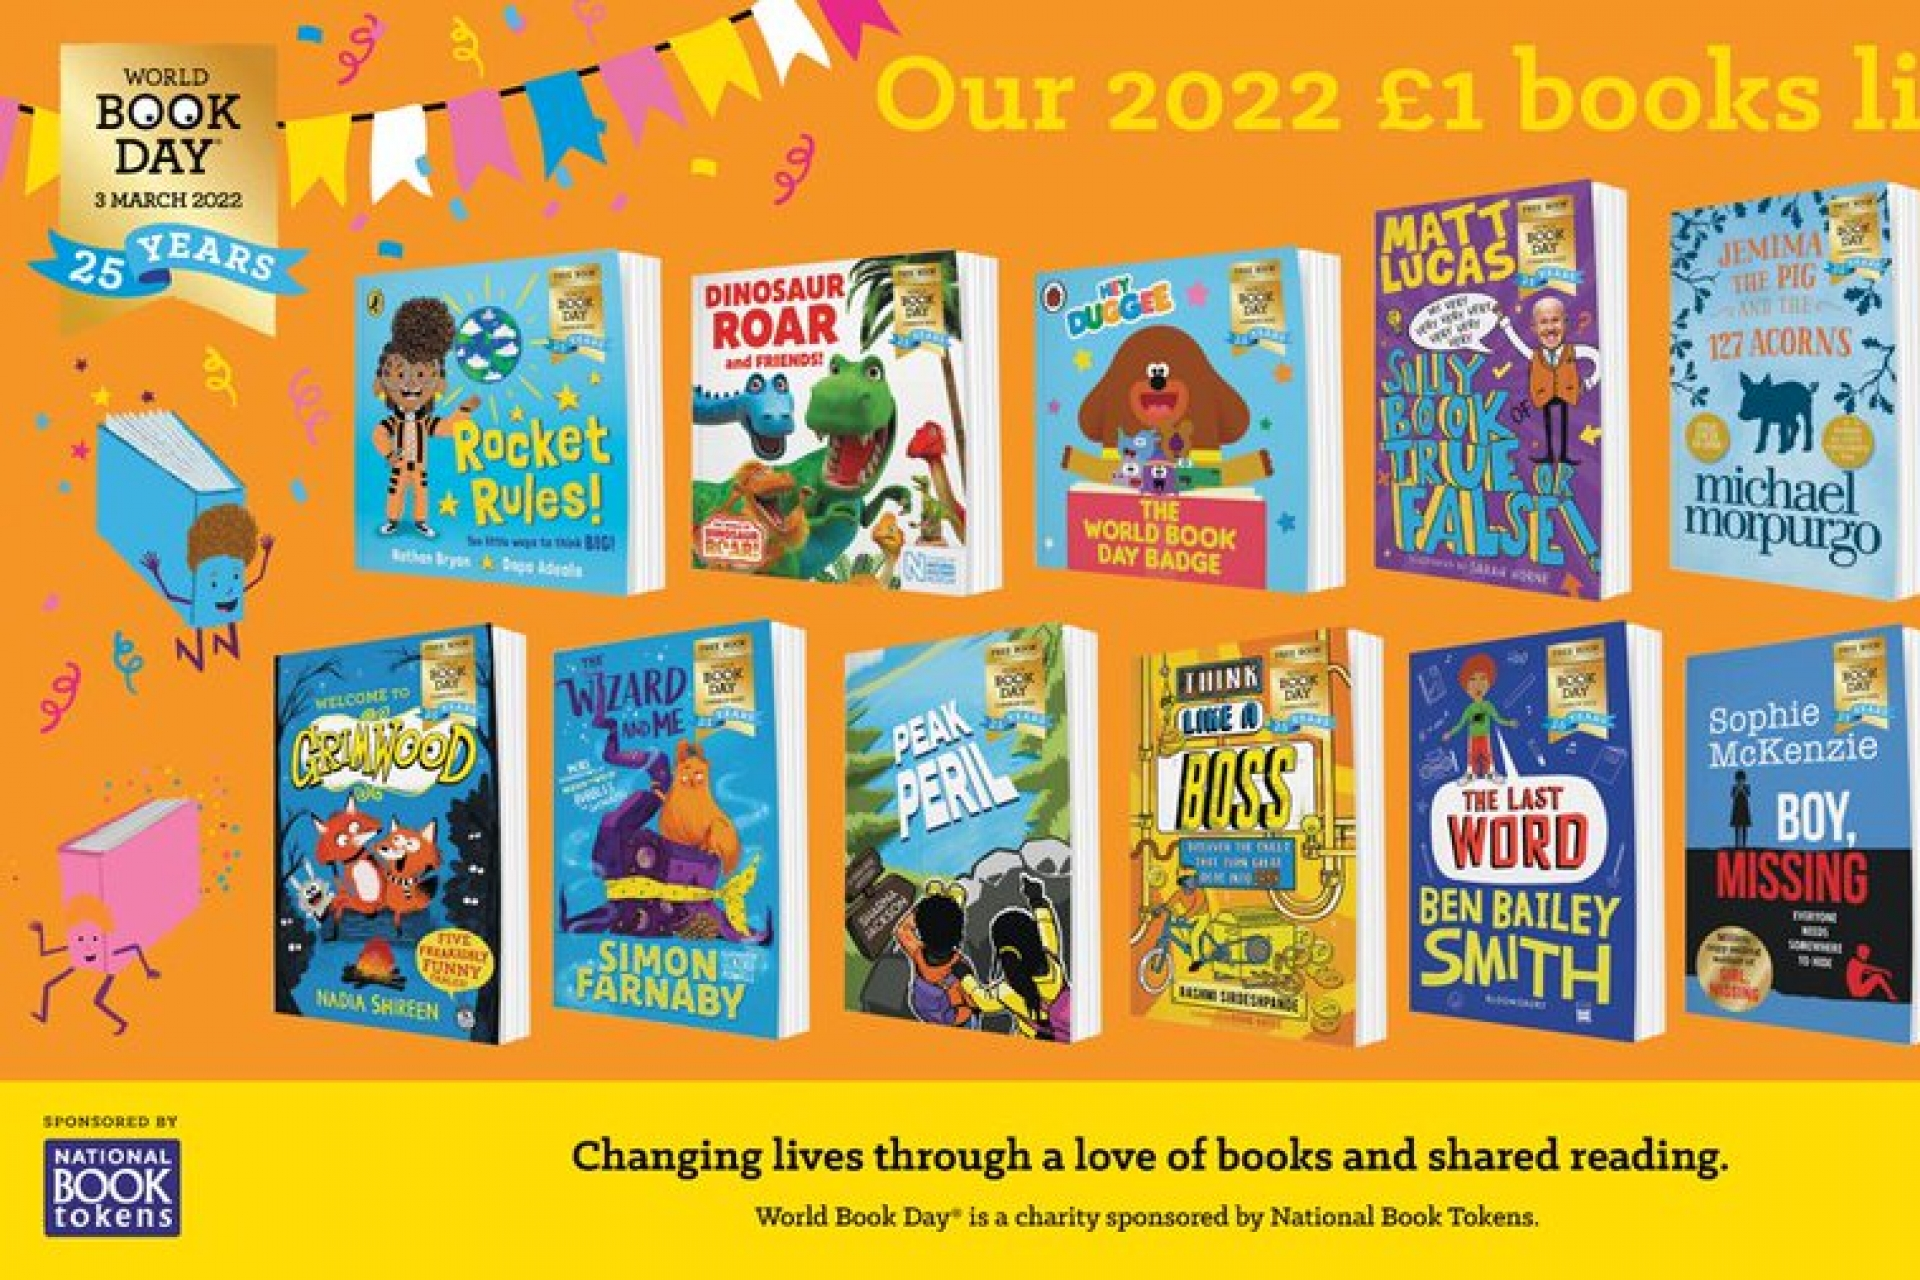 World Book Day announces 2022 £1 books for their 25th anniversary year